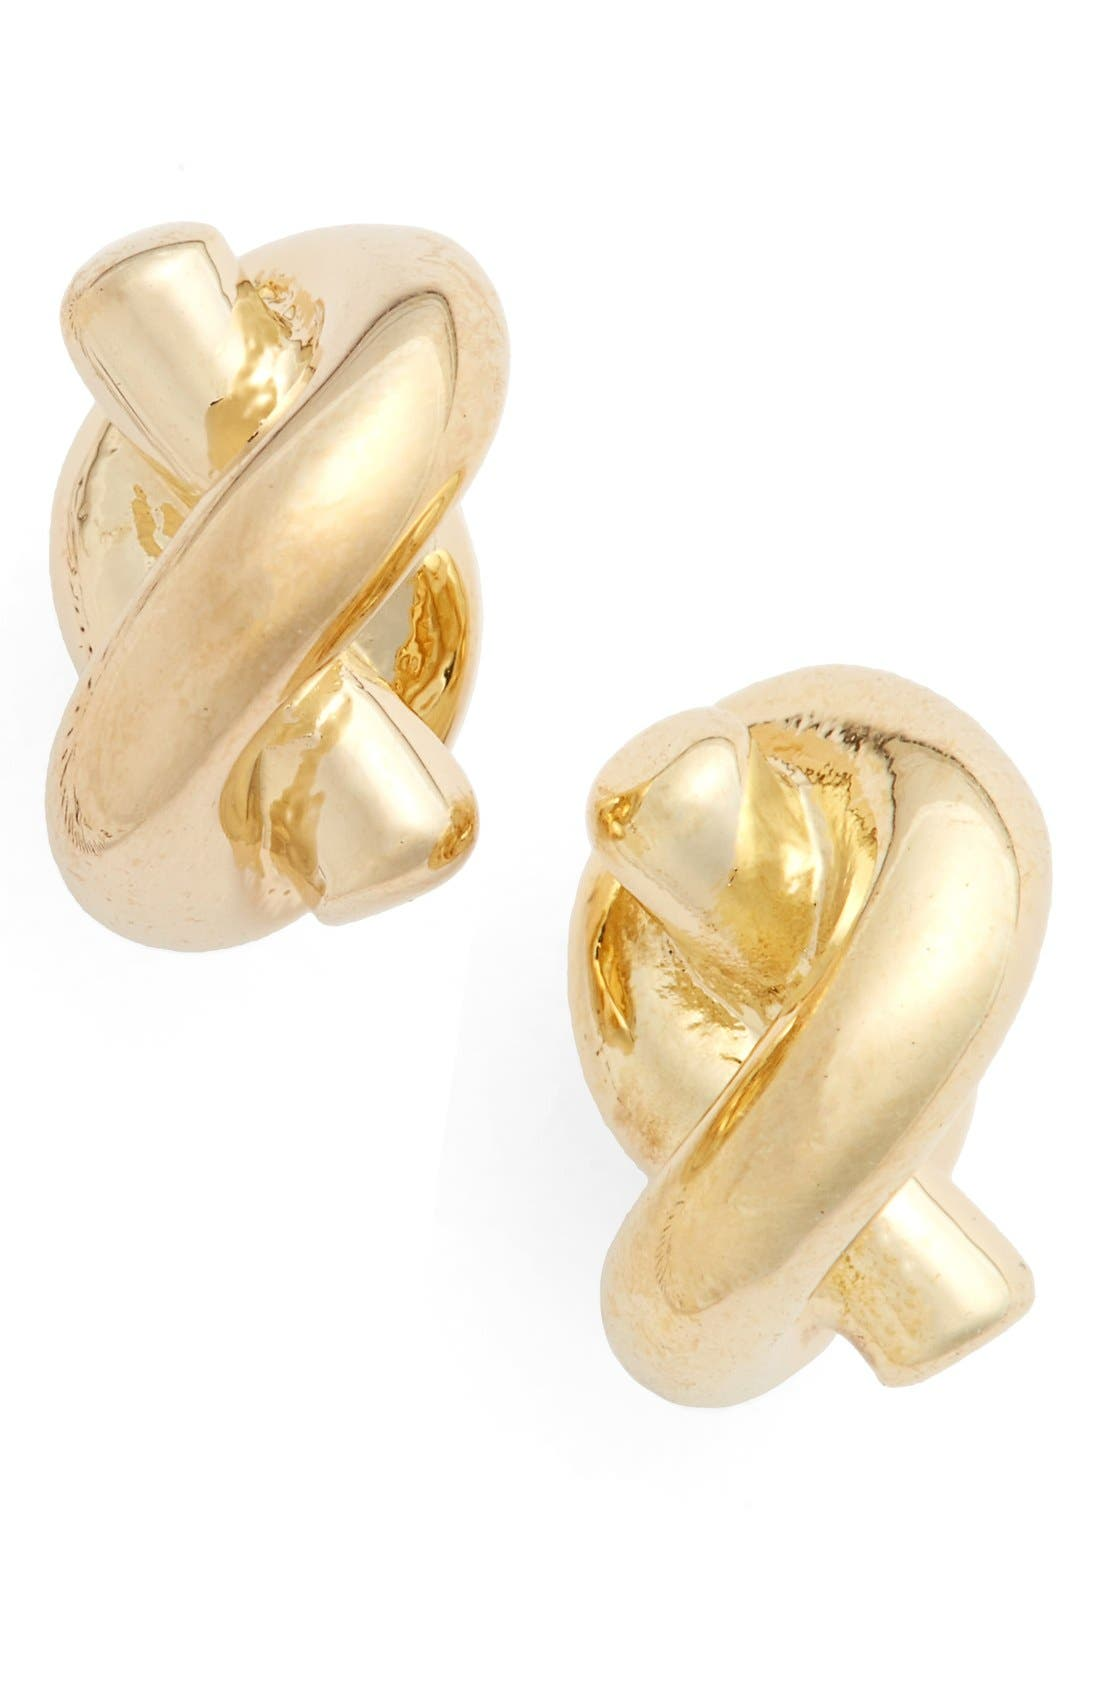 Alternate Image 1 Selected - kate spade new york 'sailors knot' mini stud earrings